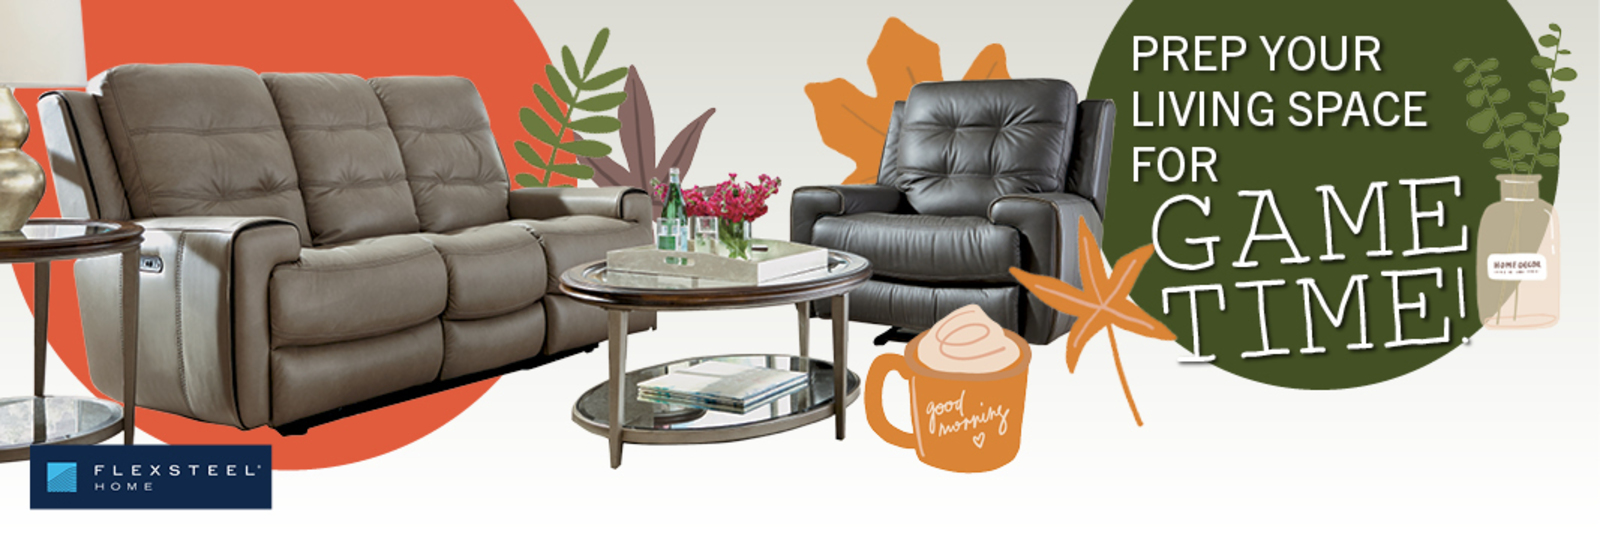 Prep Your Living Space For Game Time!